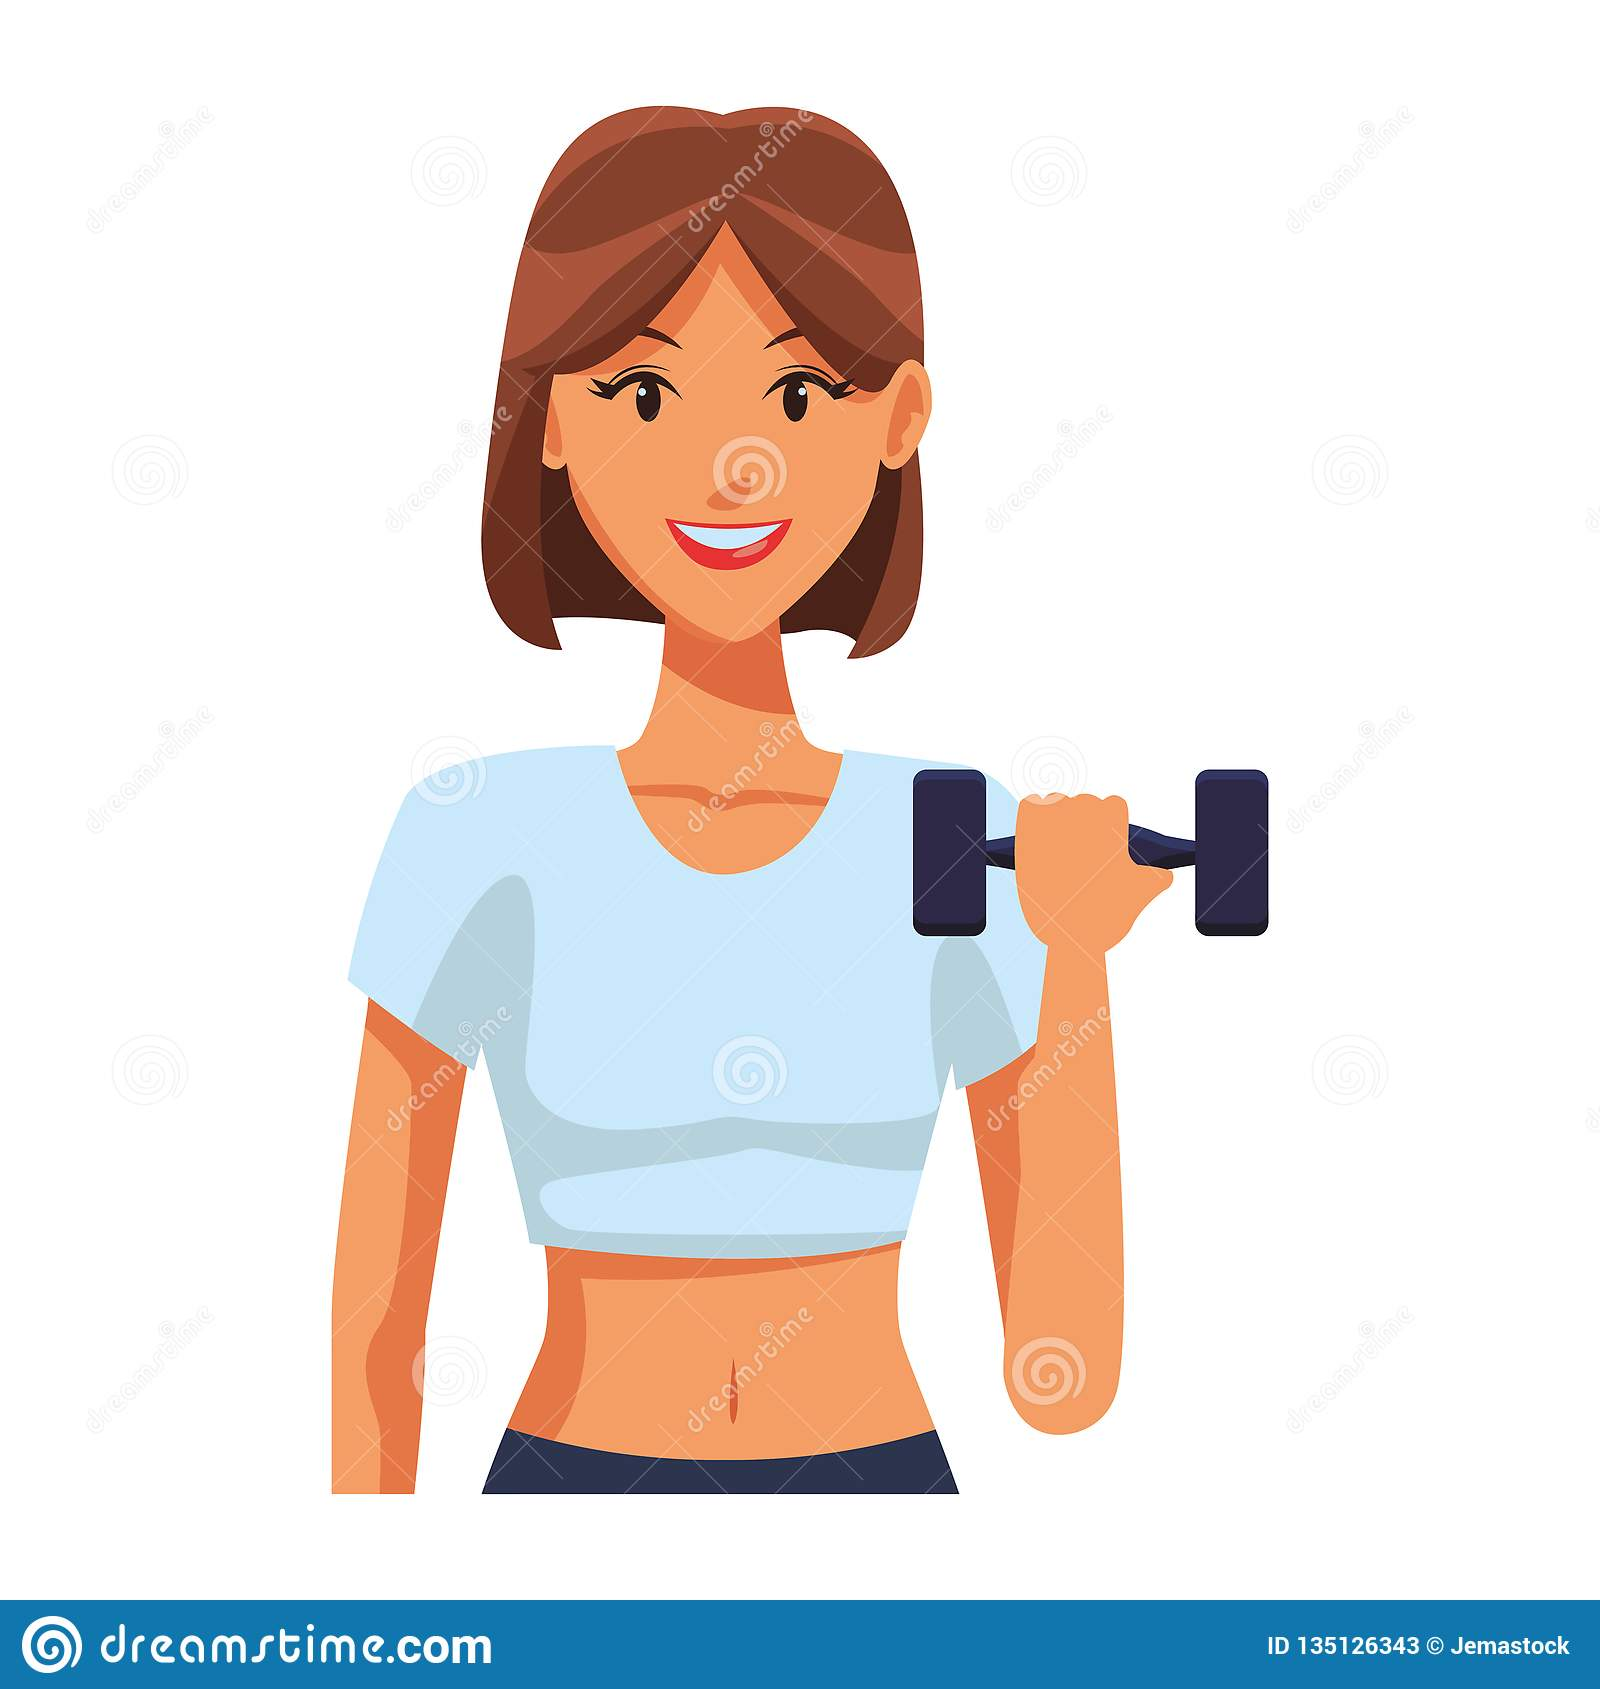 Fit Woman Doing Exercise Stock Vector Illustration Of Athlete 135126343 Discover thousands of free stock photos on freepik. https www dreamstime com fit woman doing exercise cartoon vector illustration graphic design fit woman doing exercise image135126343